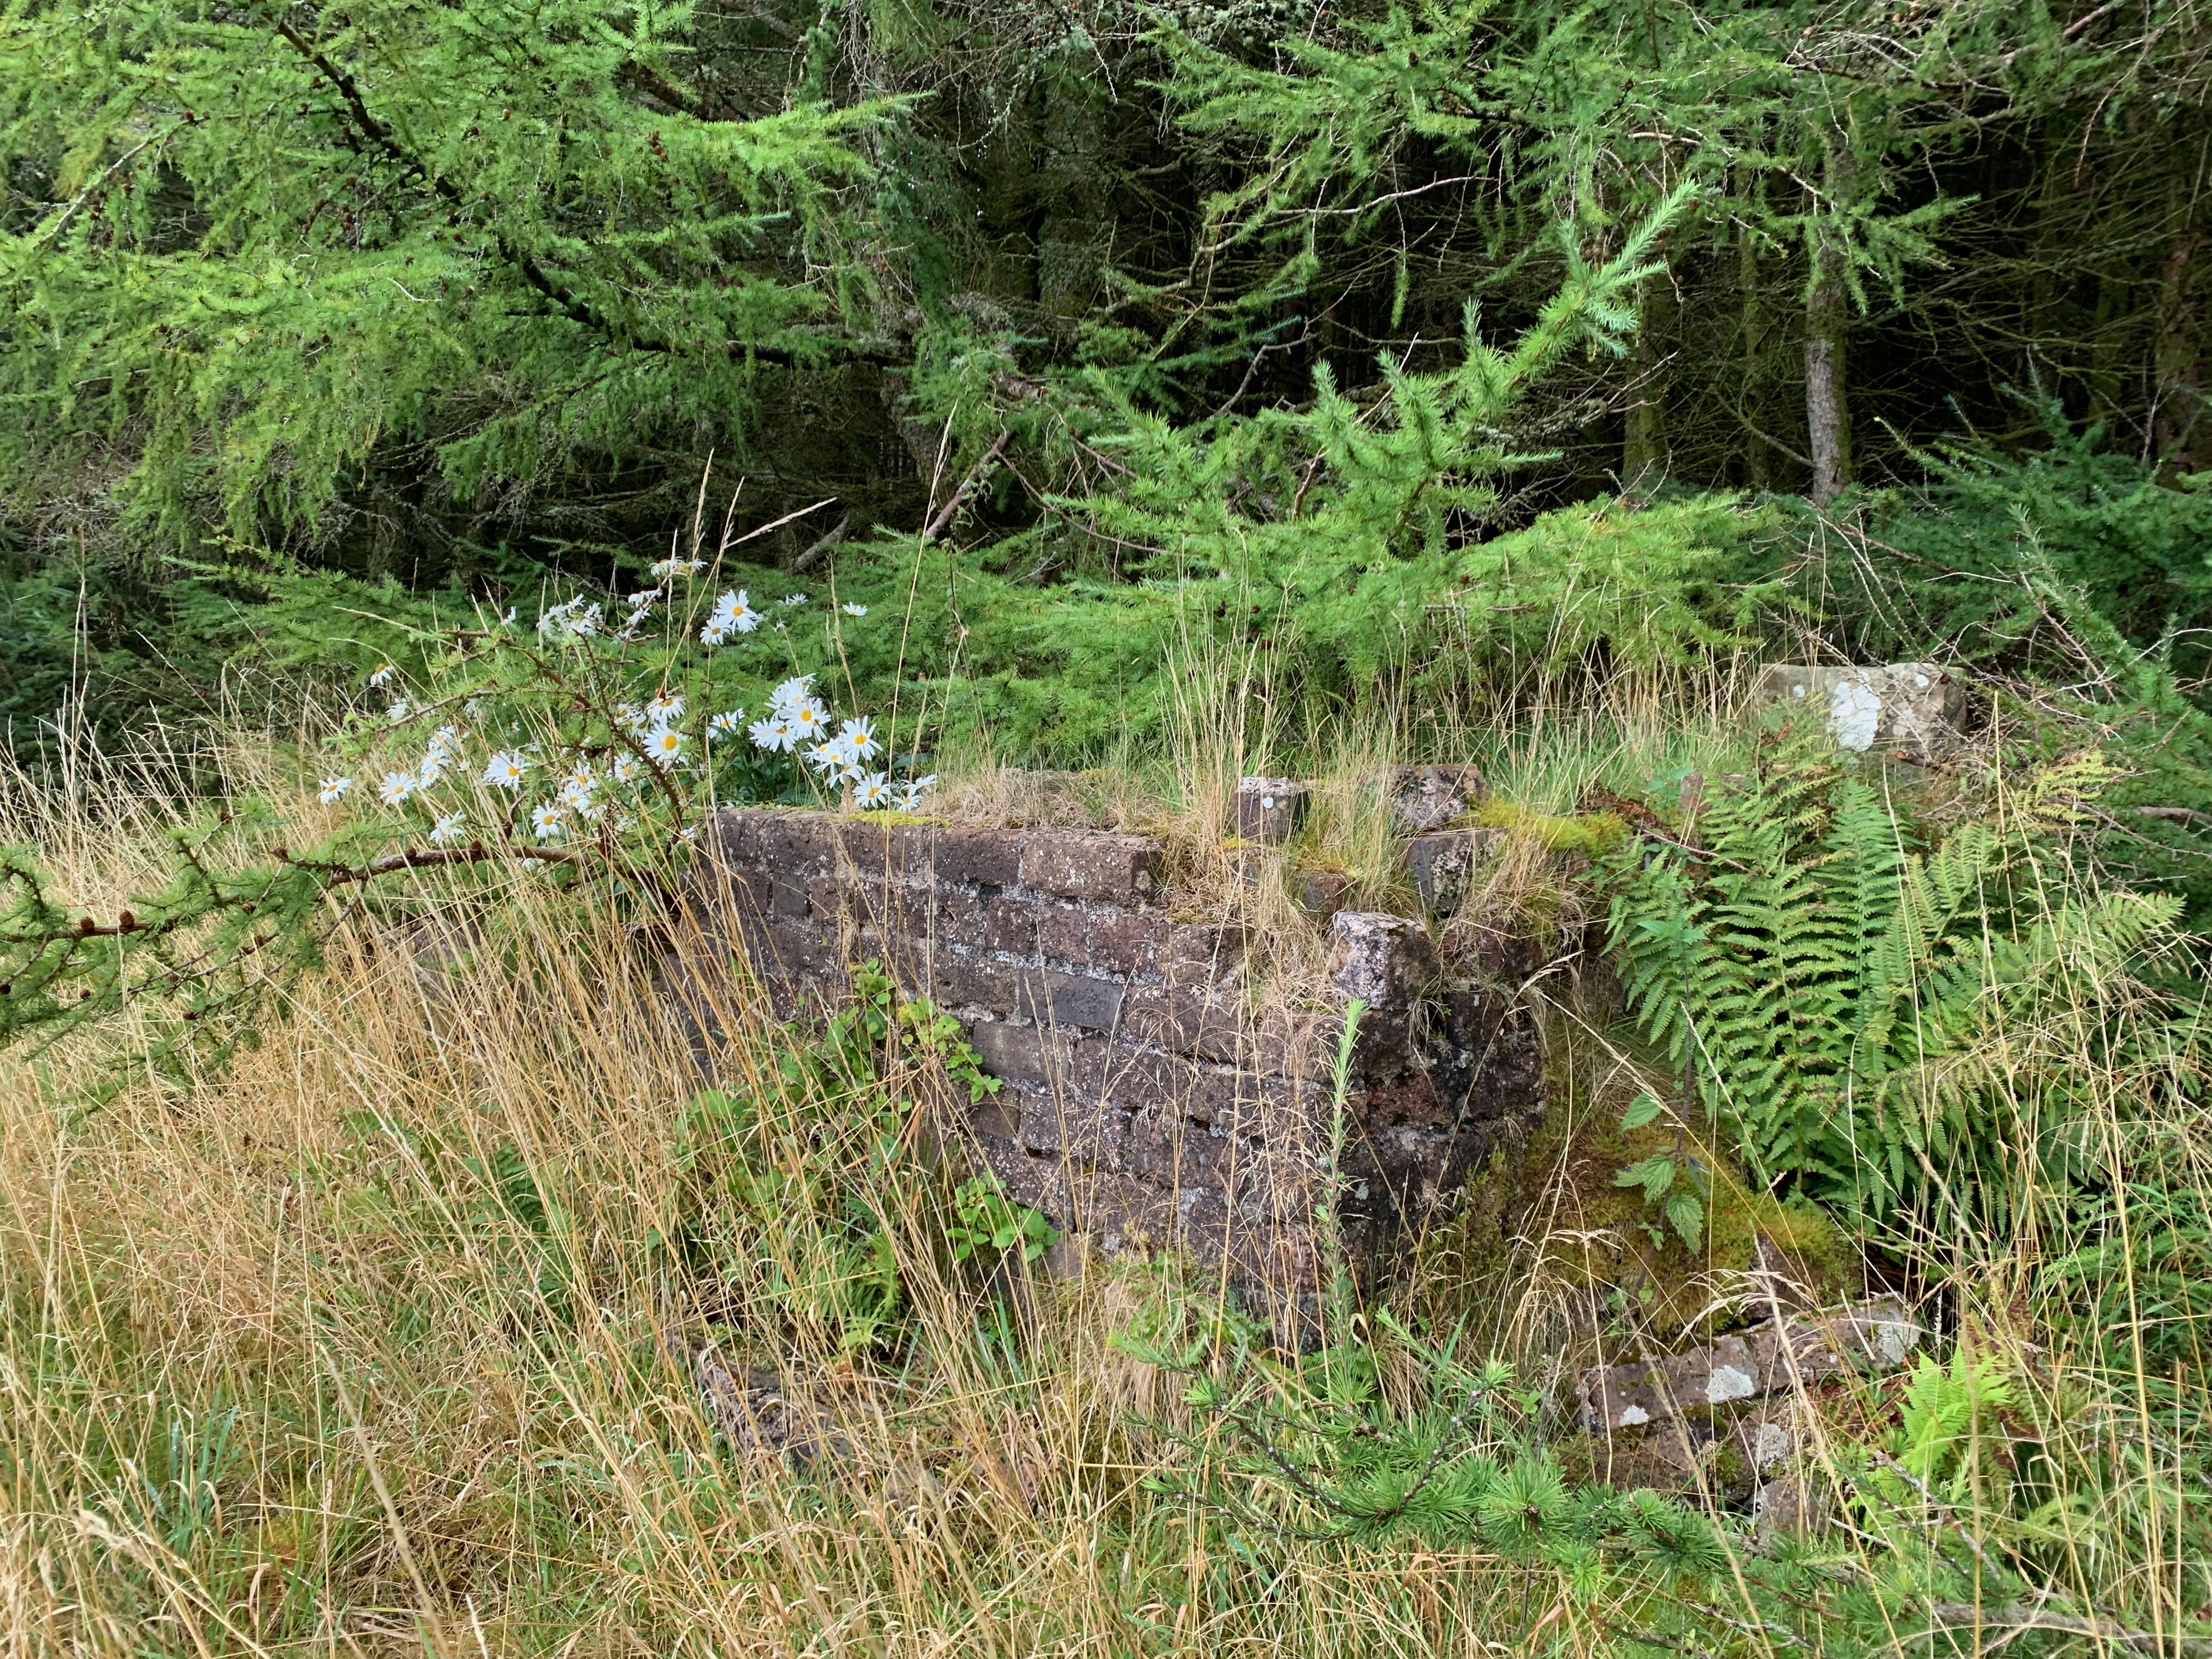 Remains of a a corner house with grass around it, flowers inside it and a forest in the background